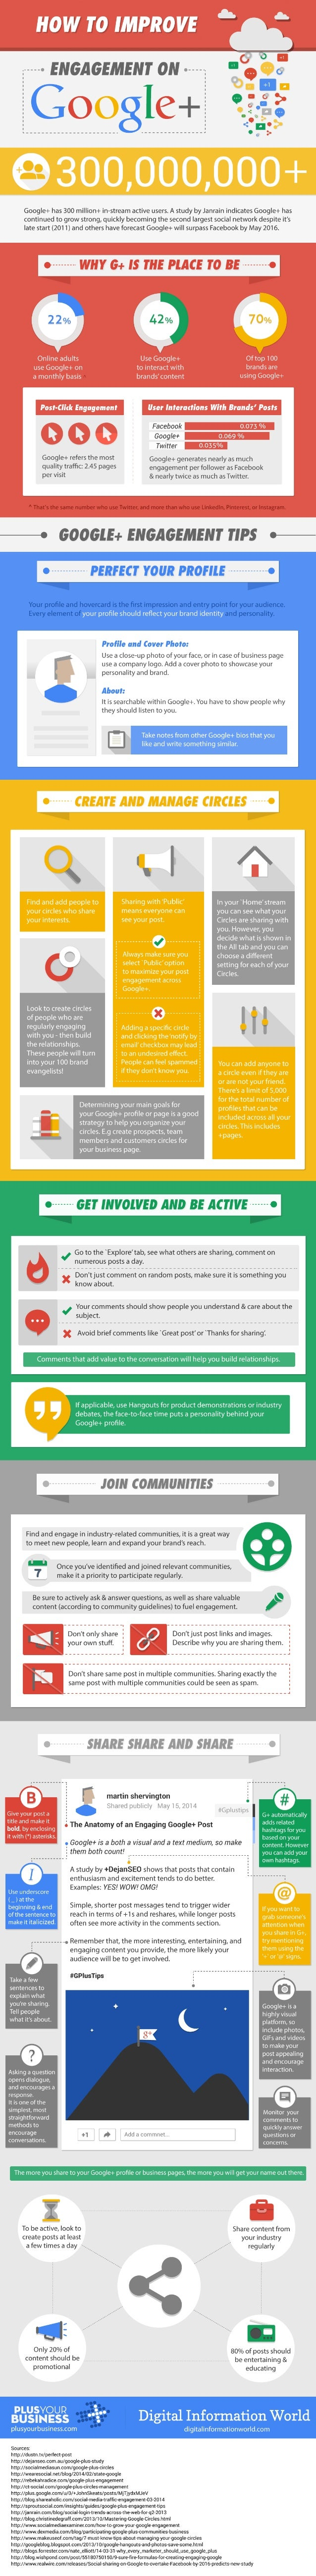 How to Improve Google+ Engagement